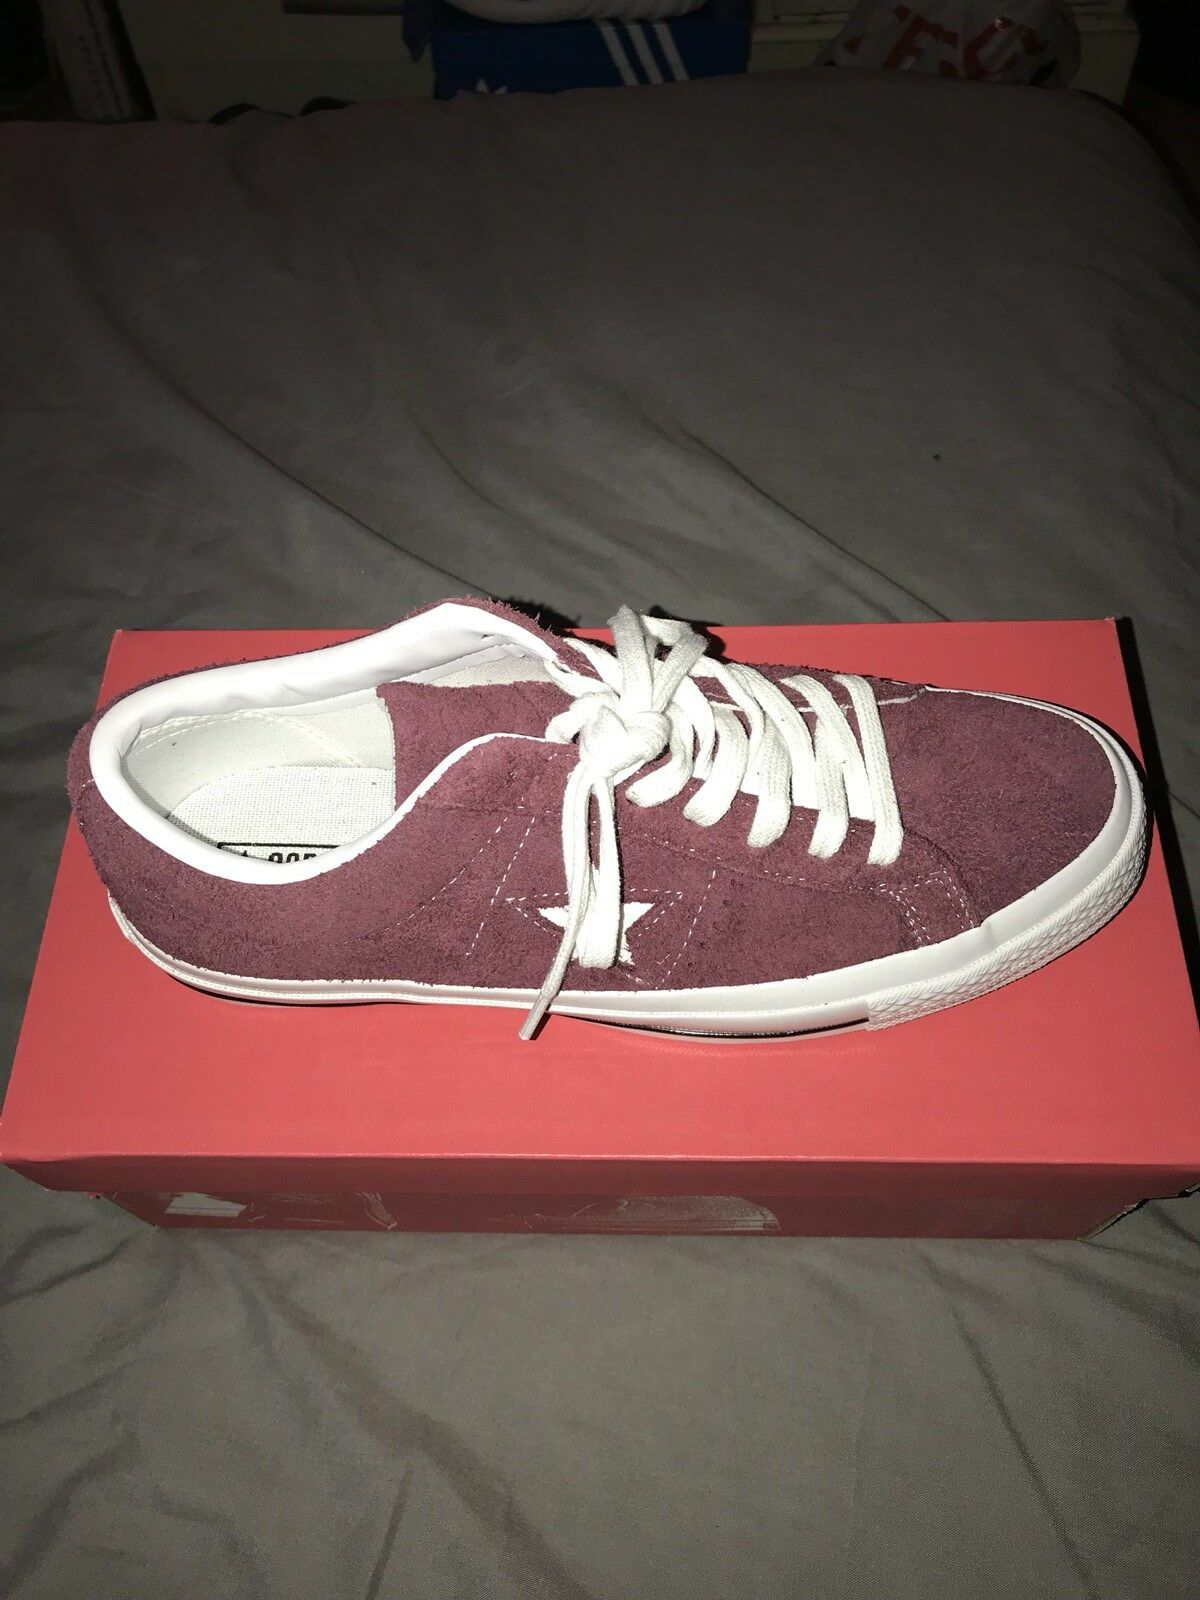 Deep Burgundy Converse  size 8 BRAND NEW IN BOX